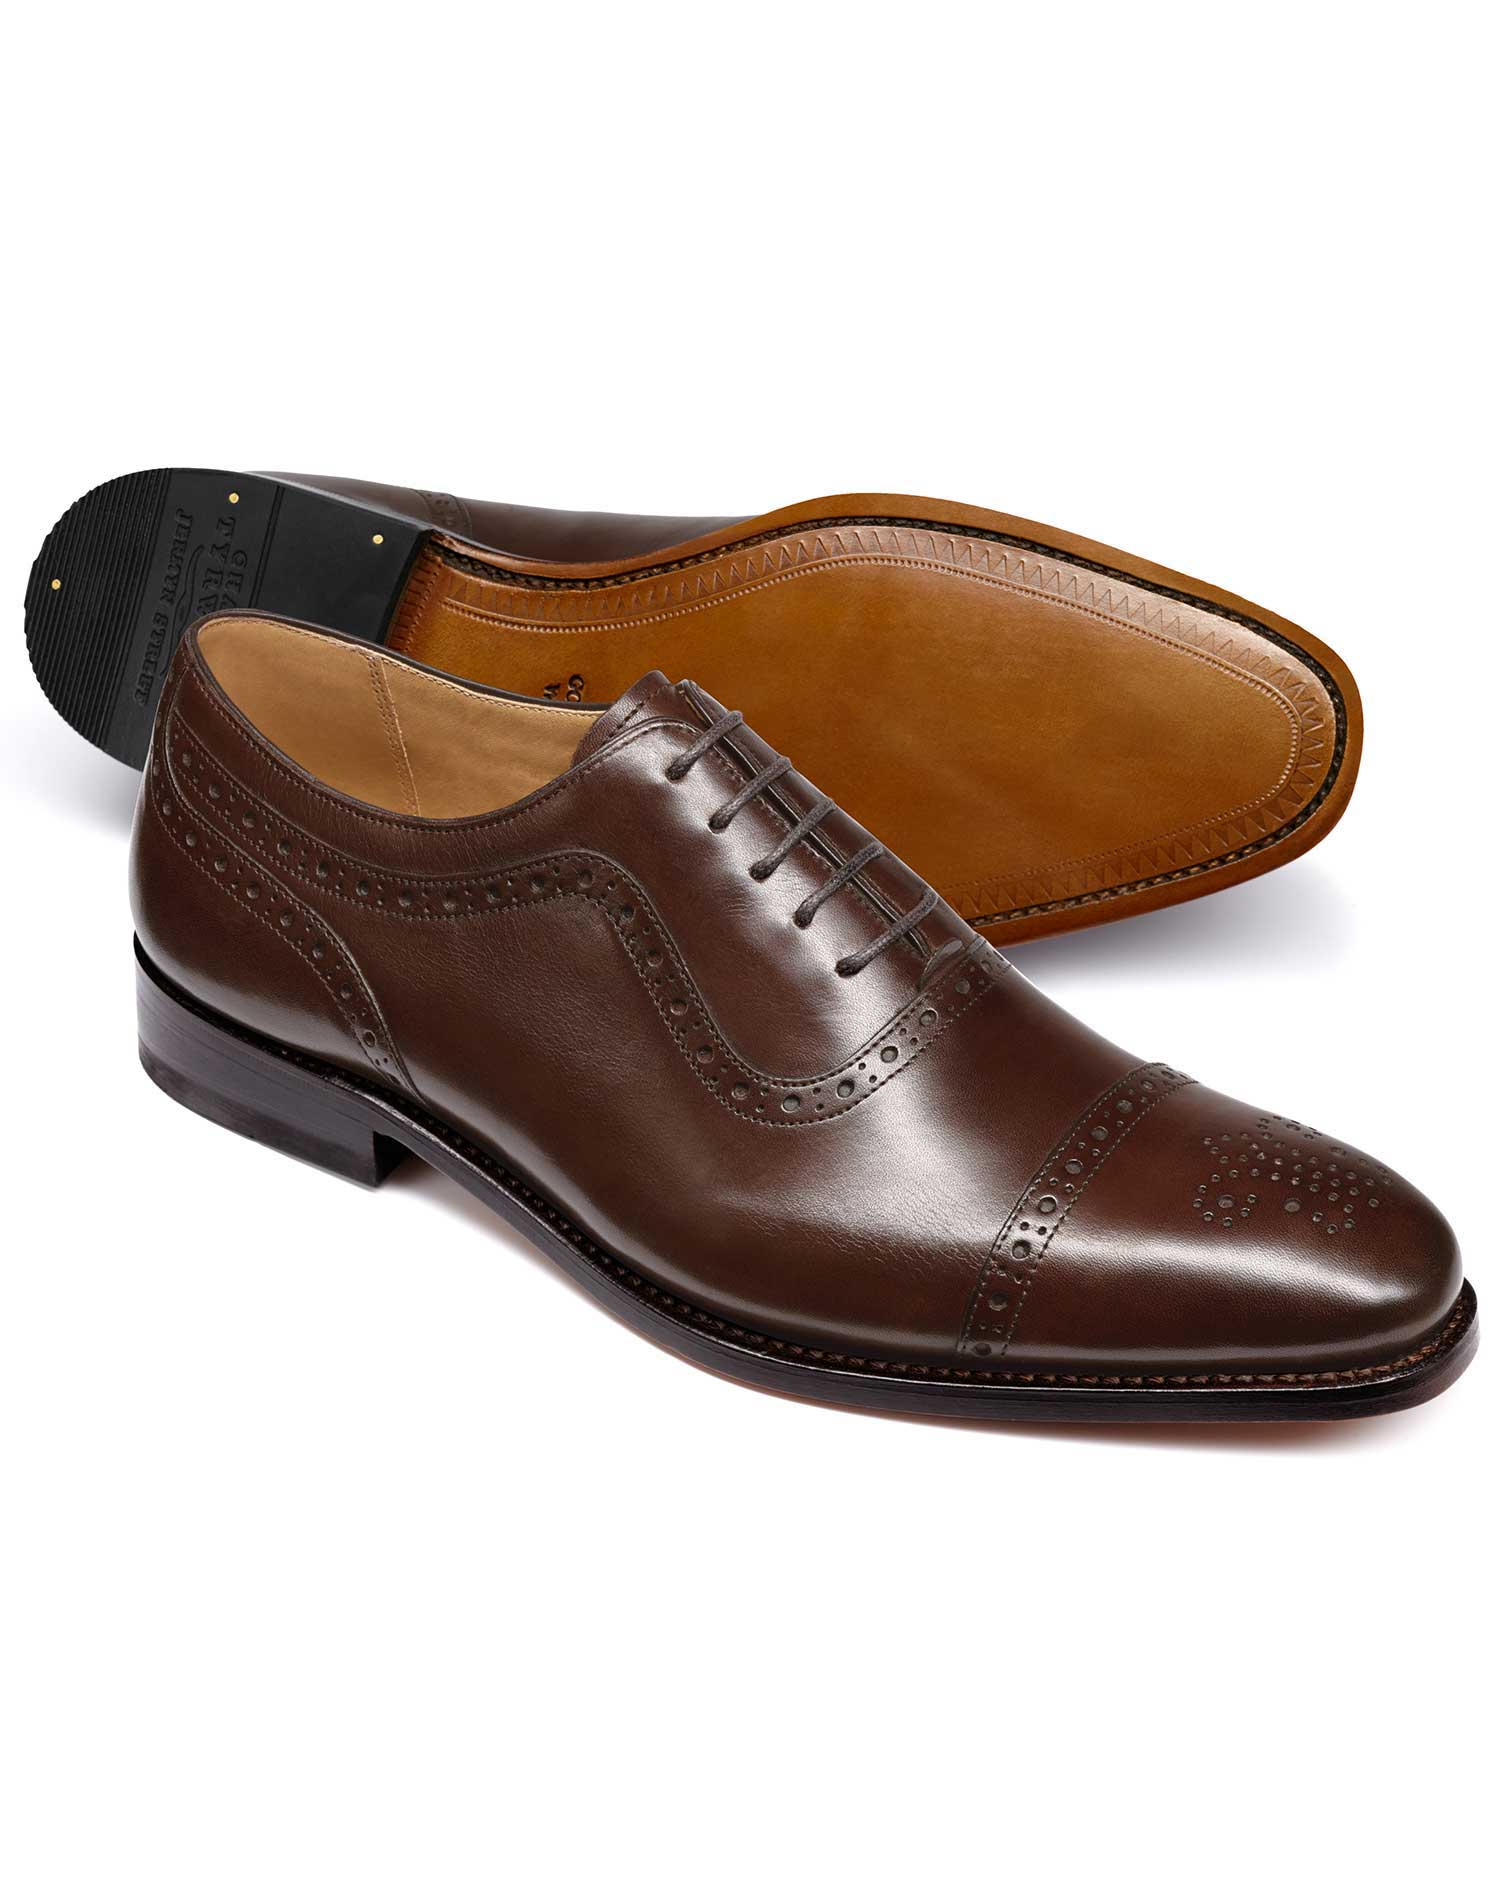 Chocolate Goodyear Welted Oxford Brogue Leather Sole Shoe Size 13 W by Charles Tyrwhitt